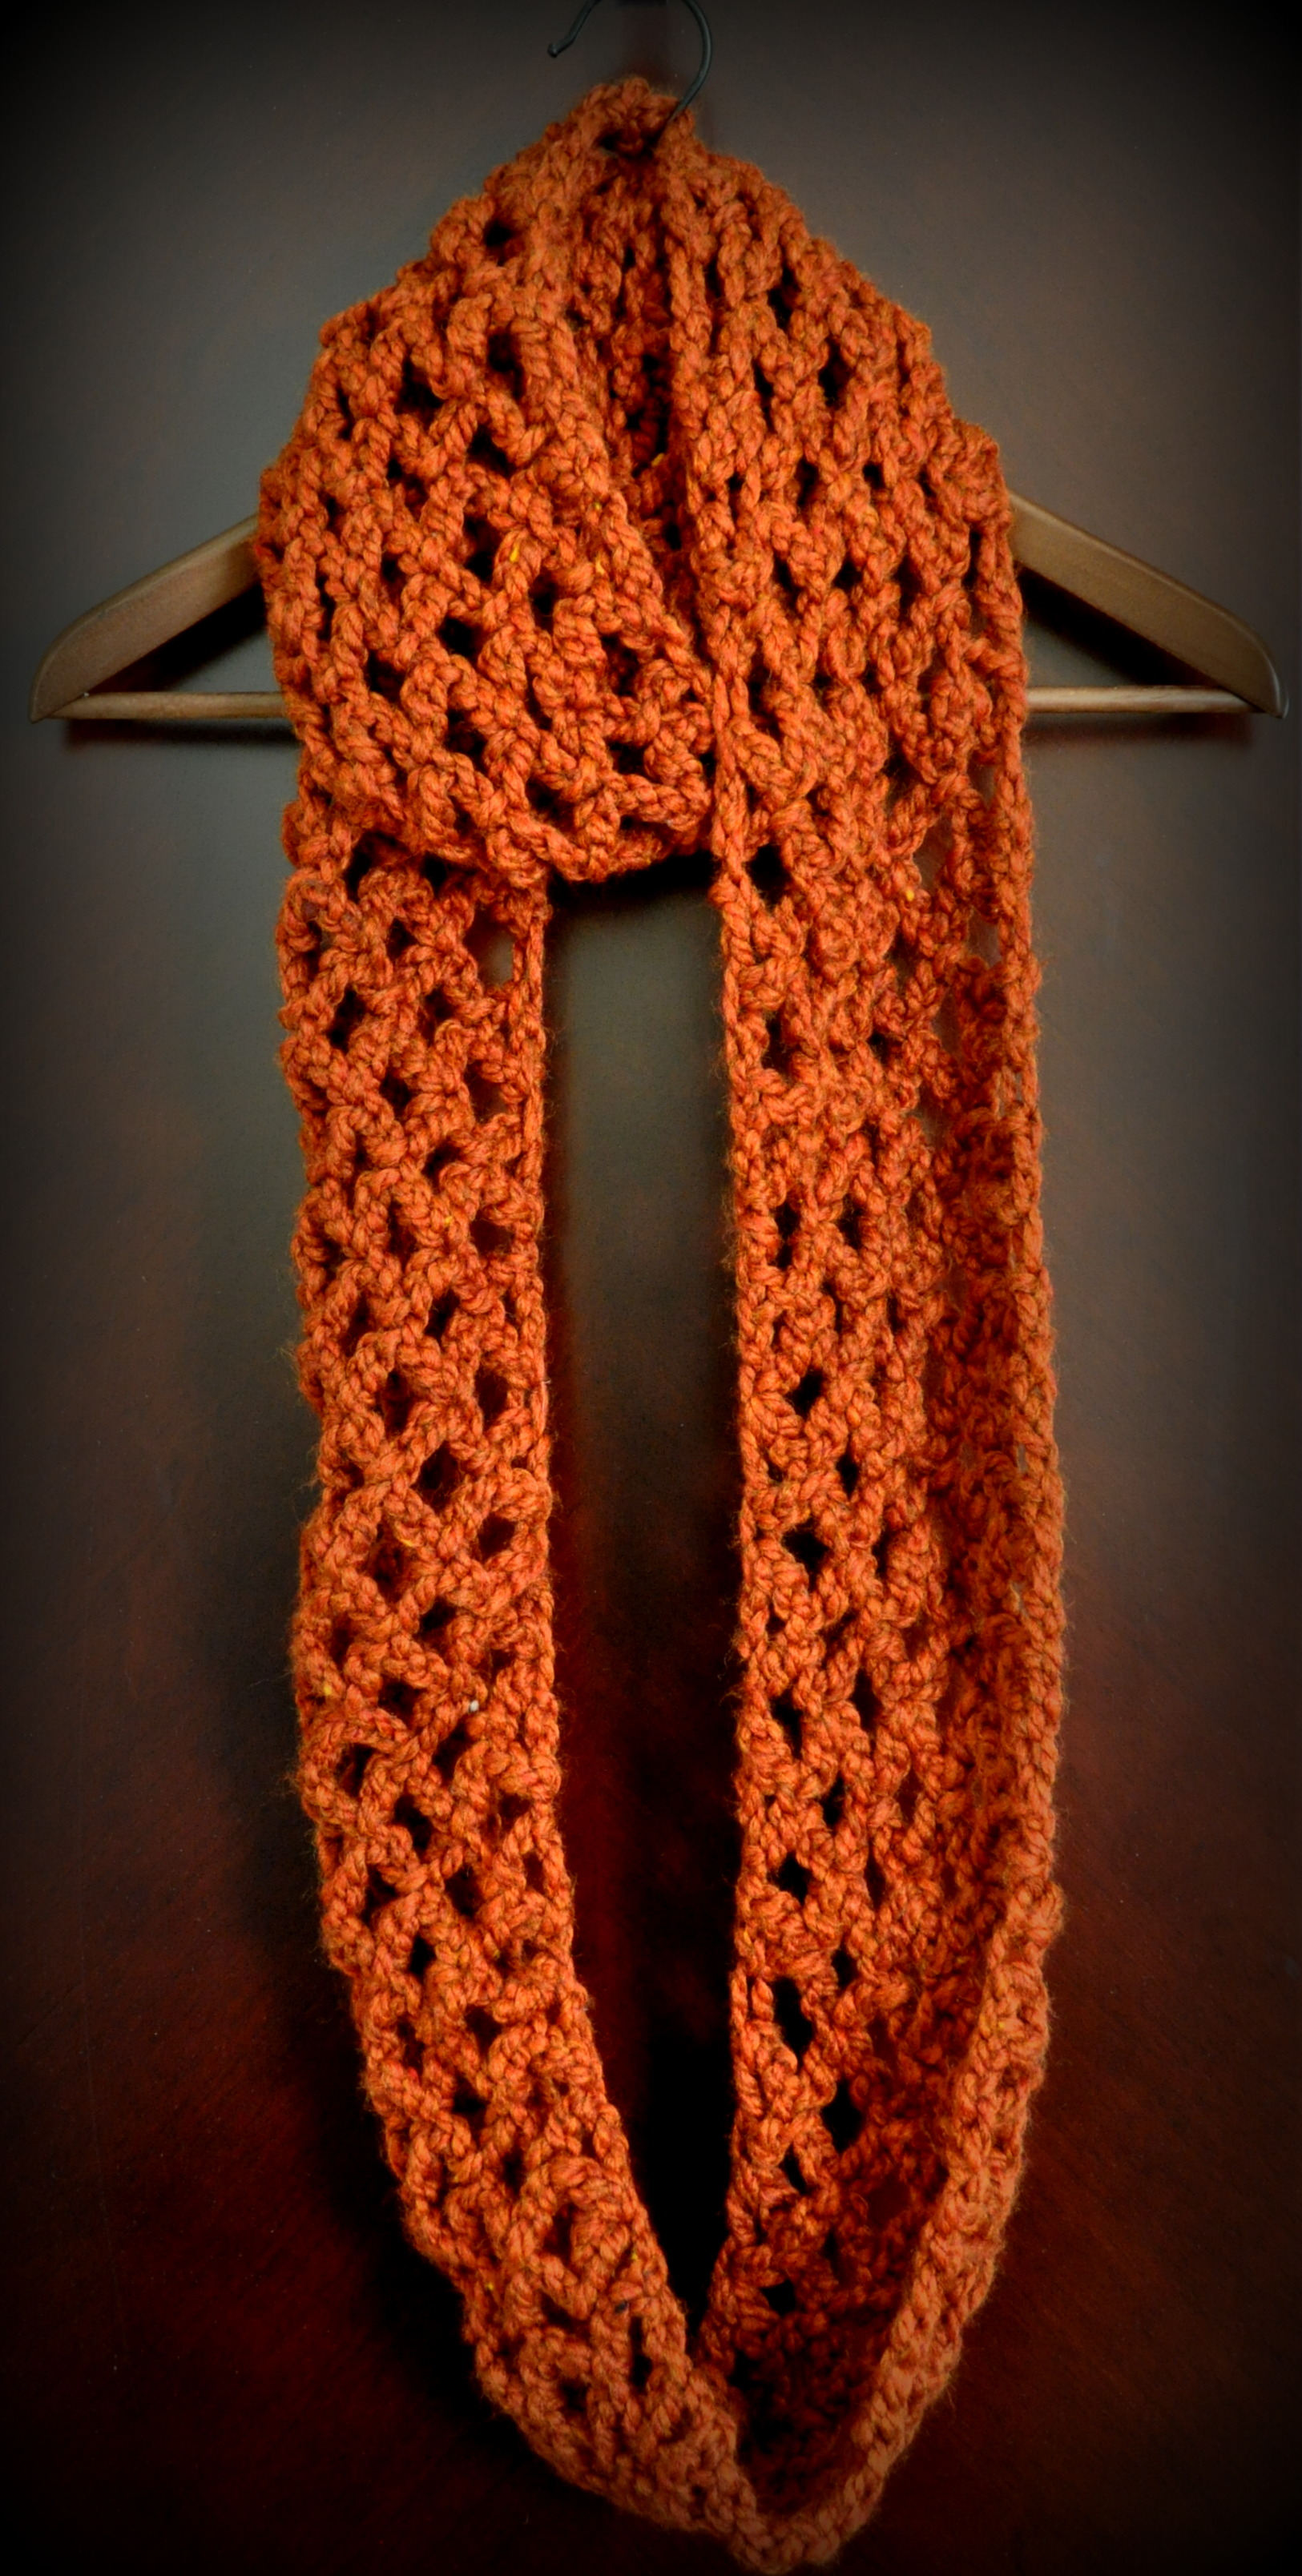 Crocheting Infinity Scarf For Beginners : 30+ Fabulous and Free Crochet Scarf Patterns -